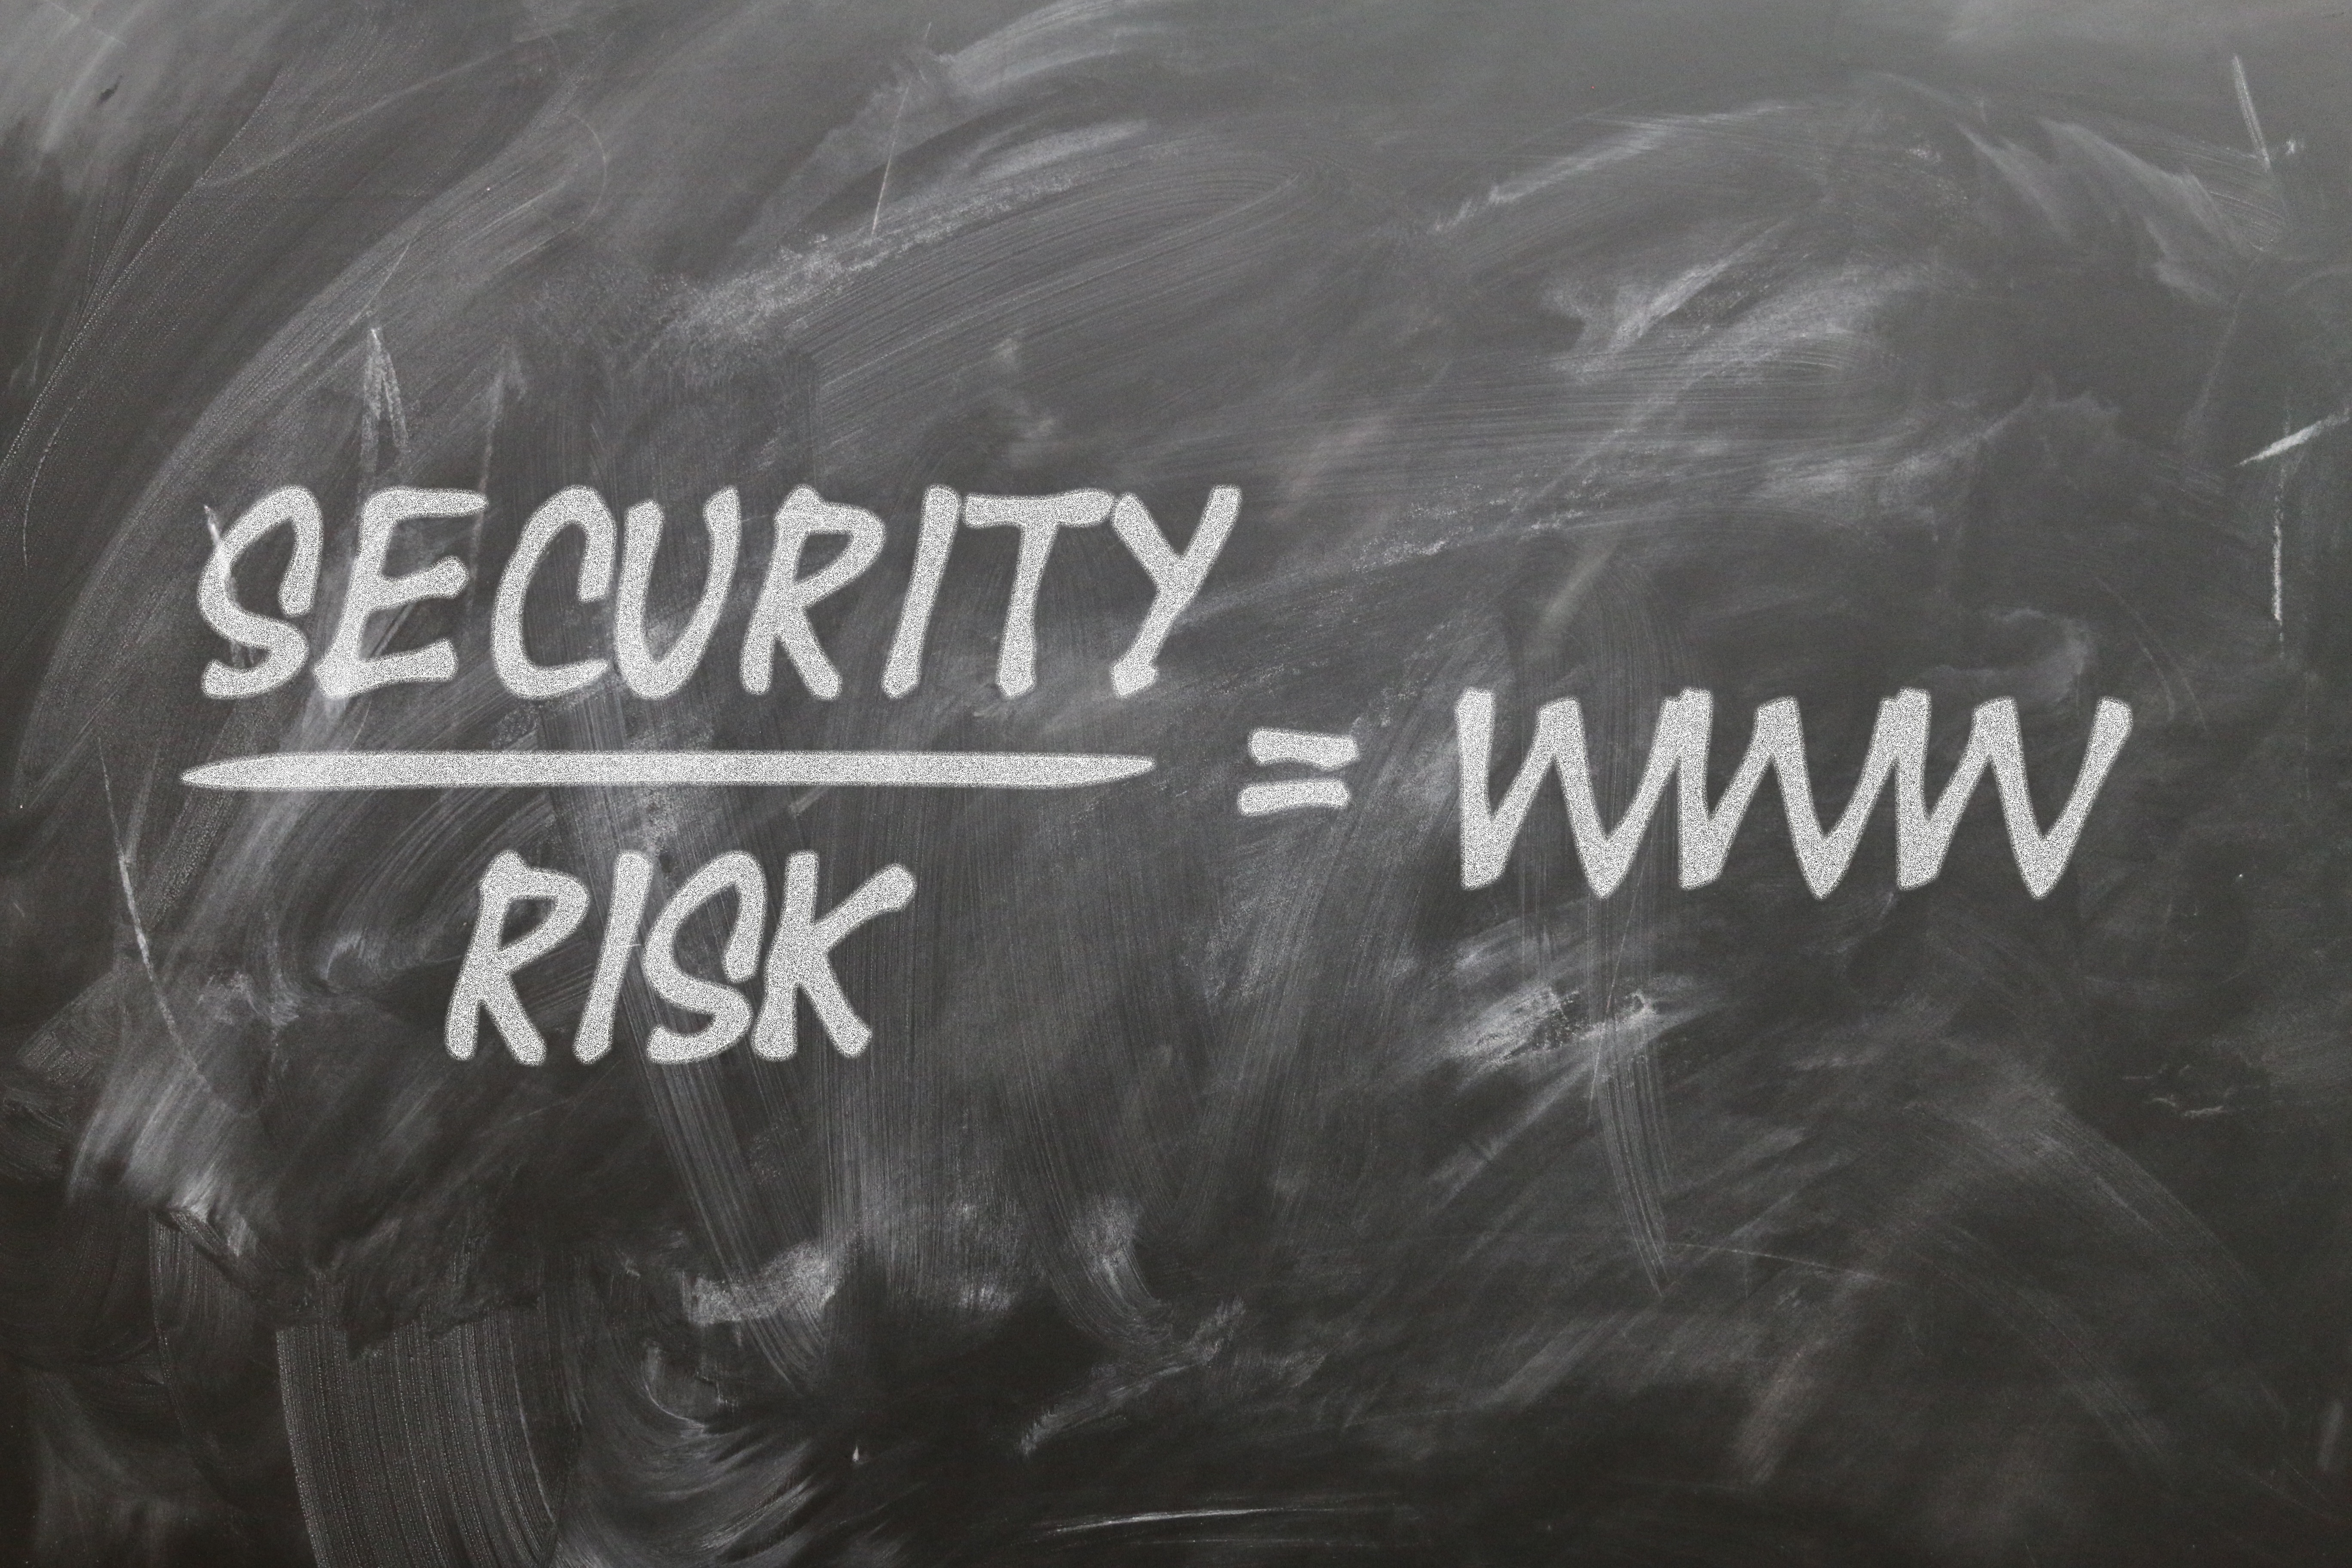 Traditional security models may not scale to support the IIoT